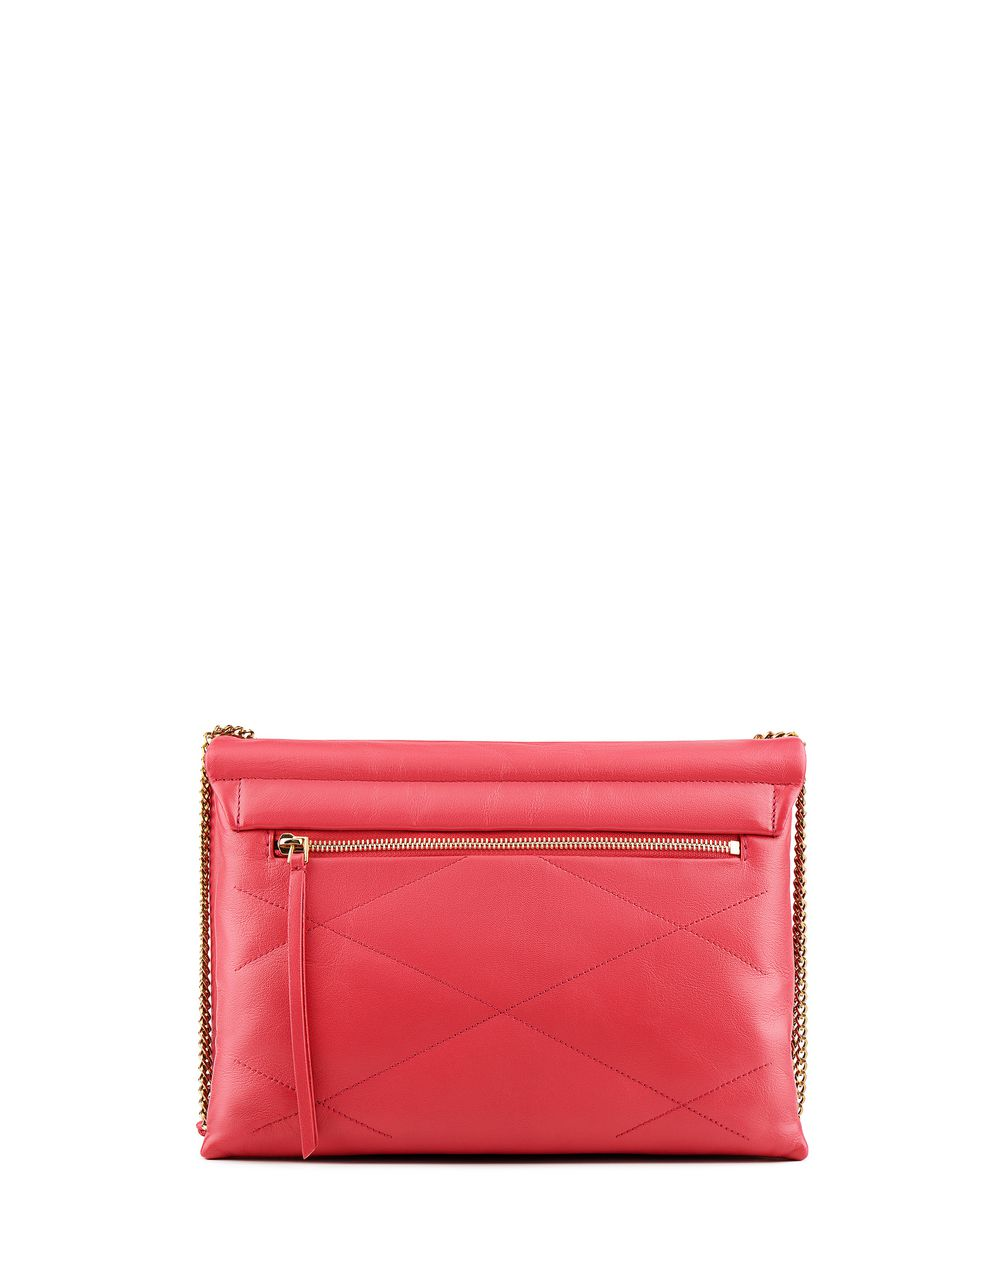 MEDIUM SUGAR BAG - Lanvin